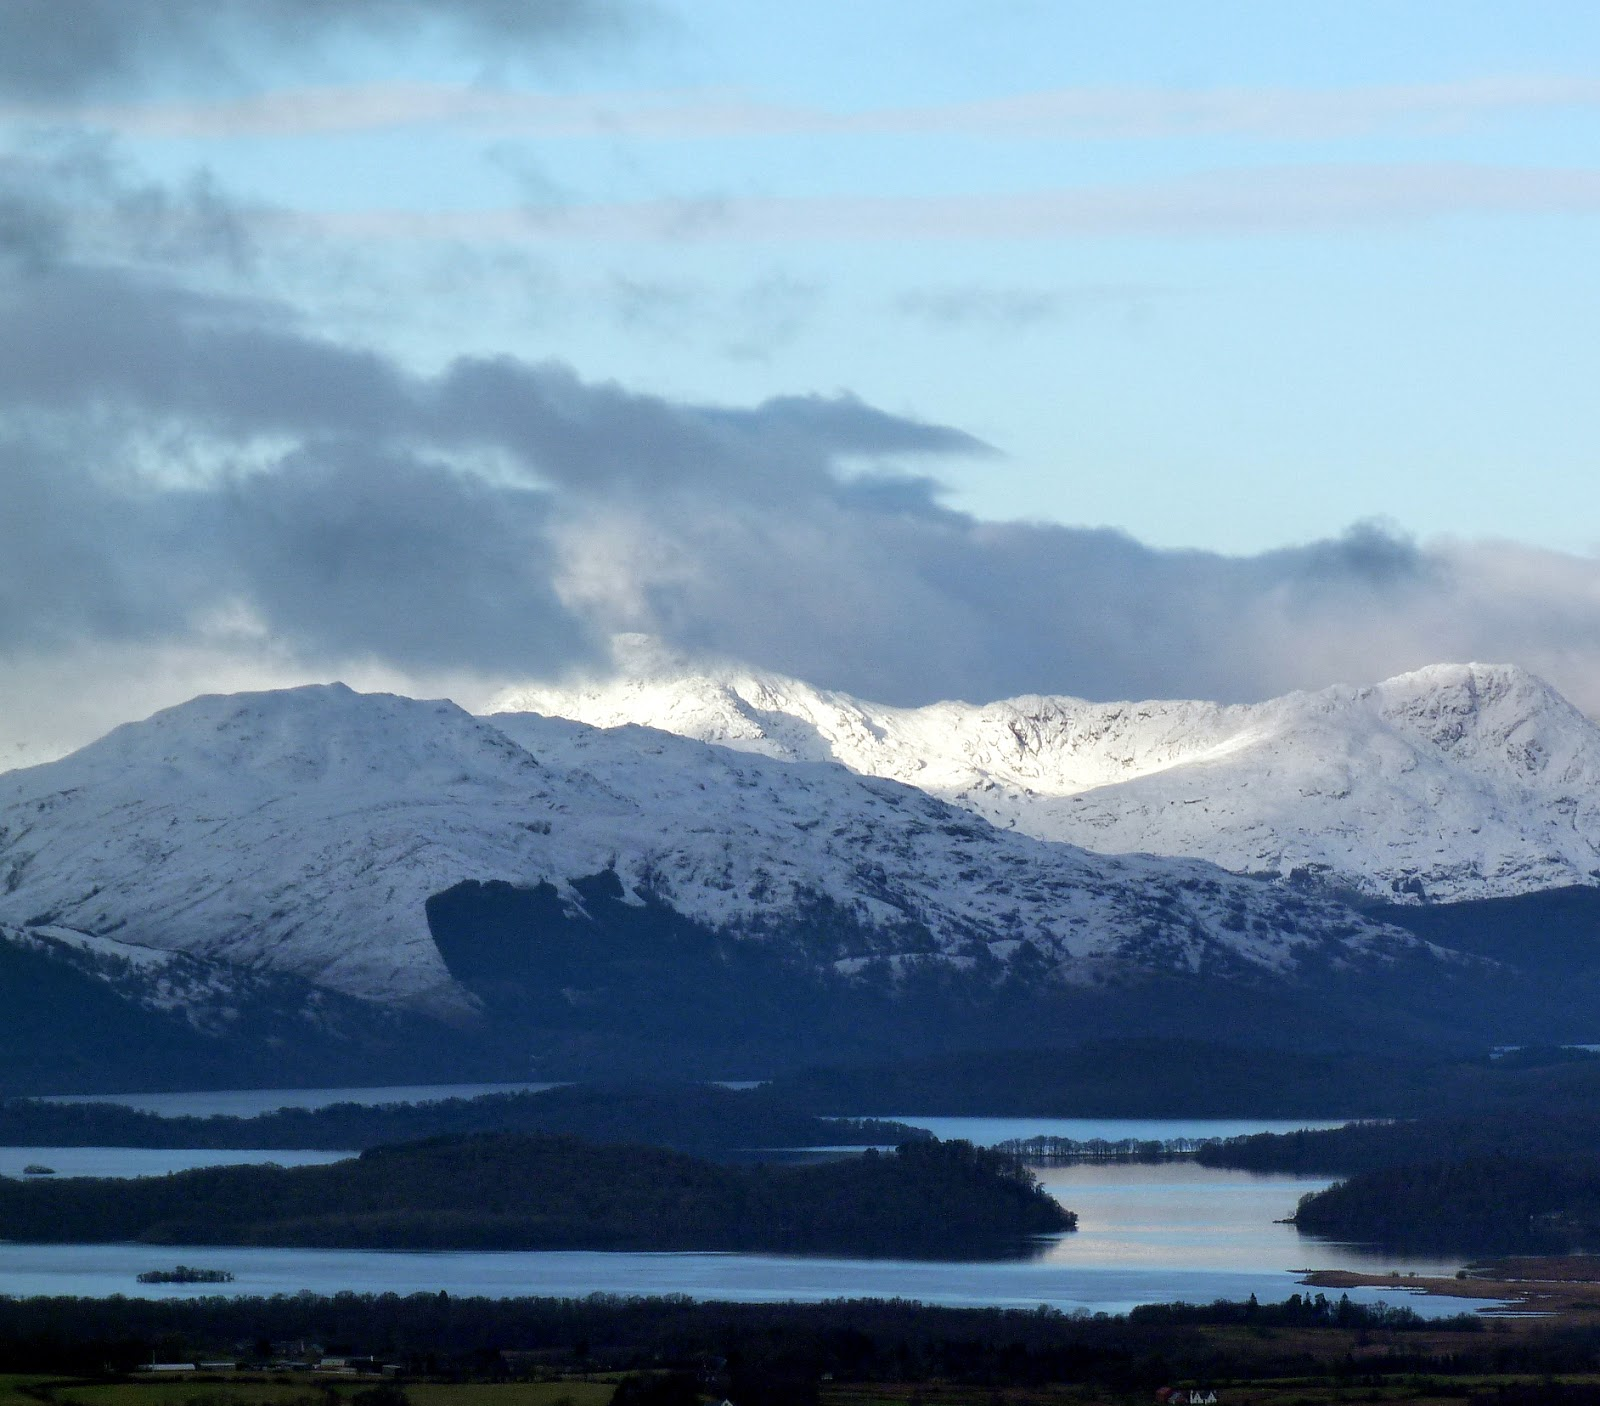 View of Loch Lomond from Queen's View